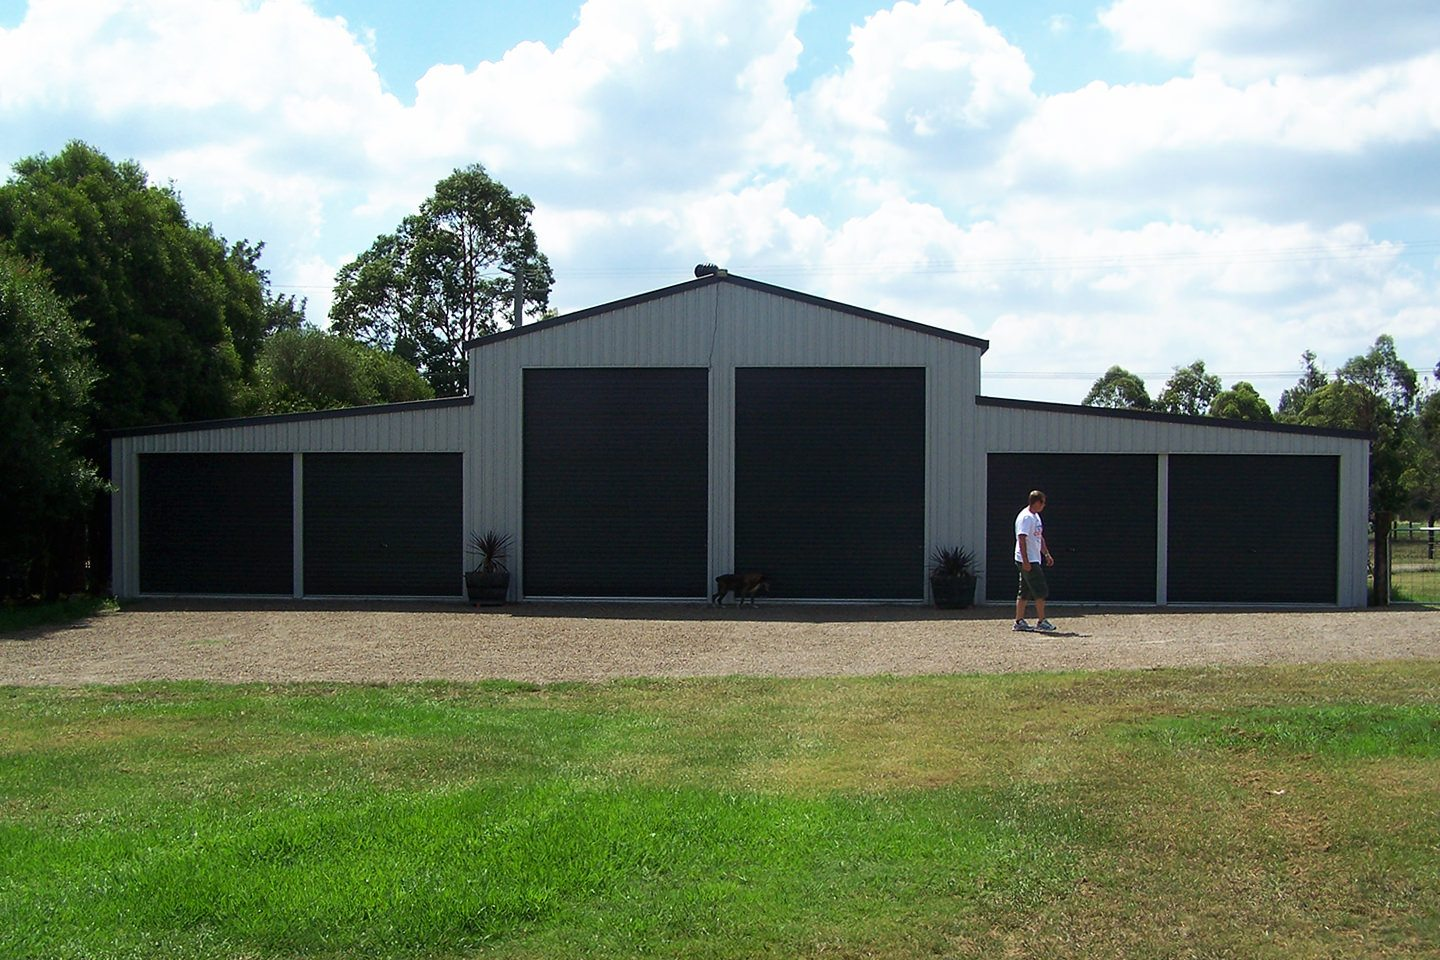 Machinery shed Echuca Sheds and Garages for